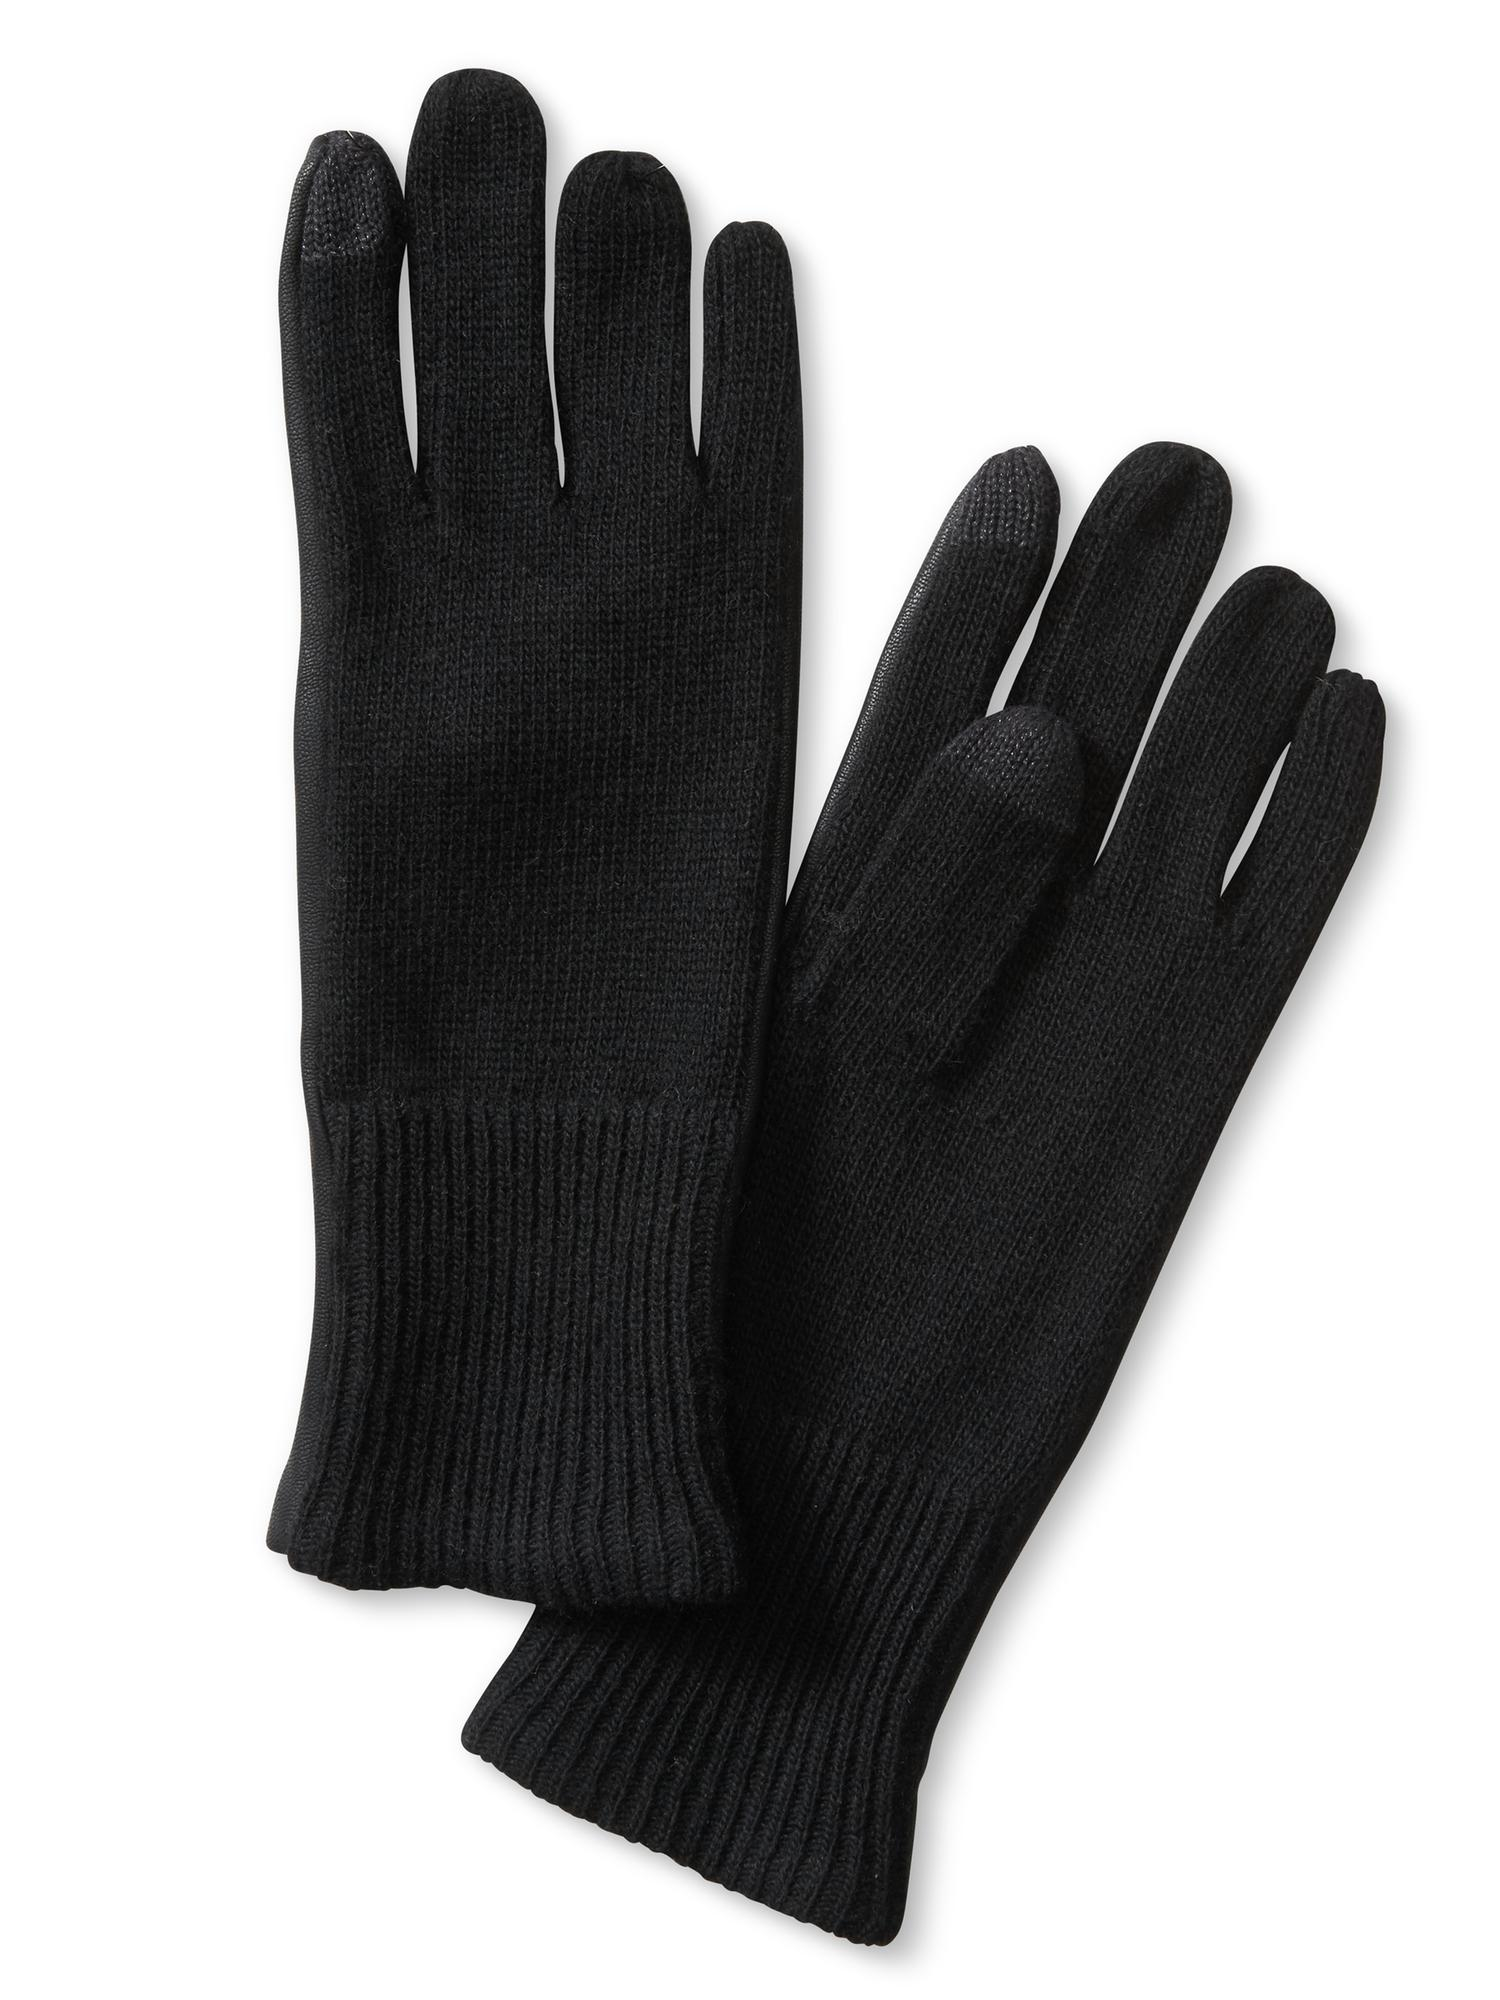 Merino Wool Fingerless Glove: fabric & care % extra-fine Merino wool. Hand wash cold, dry flat, cool iron; or dry clean. overview Knit with an allover ribbed stitch for extra comfort, these fingerless gloves are made with soft, luxurious and remarkably warm Merino wool. Fit &.